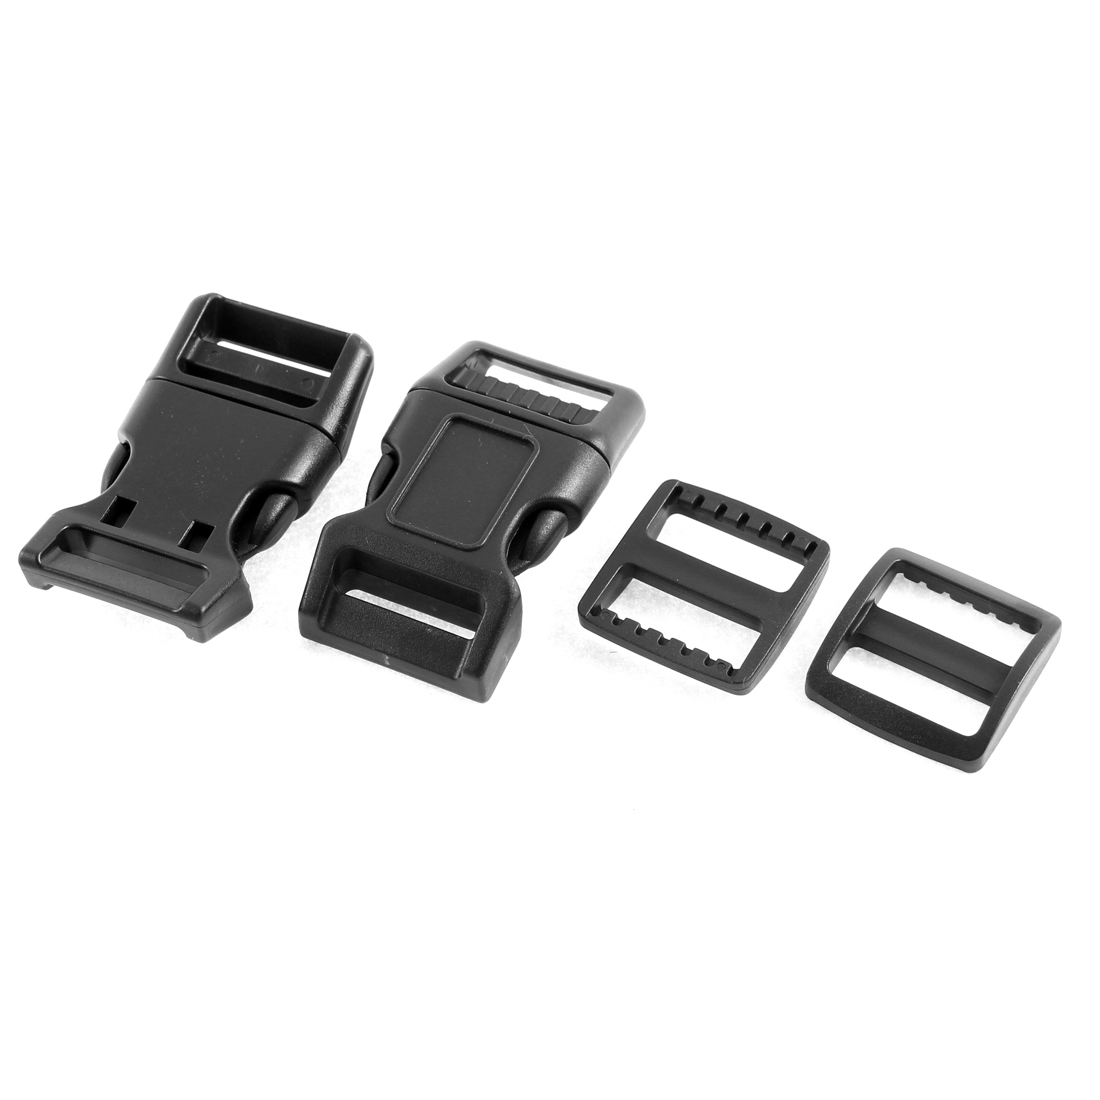 Curved Side Release Buckles Tri Glide Buckles 4 In 1